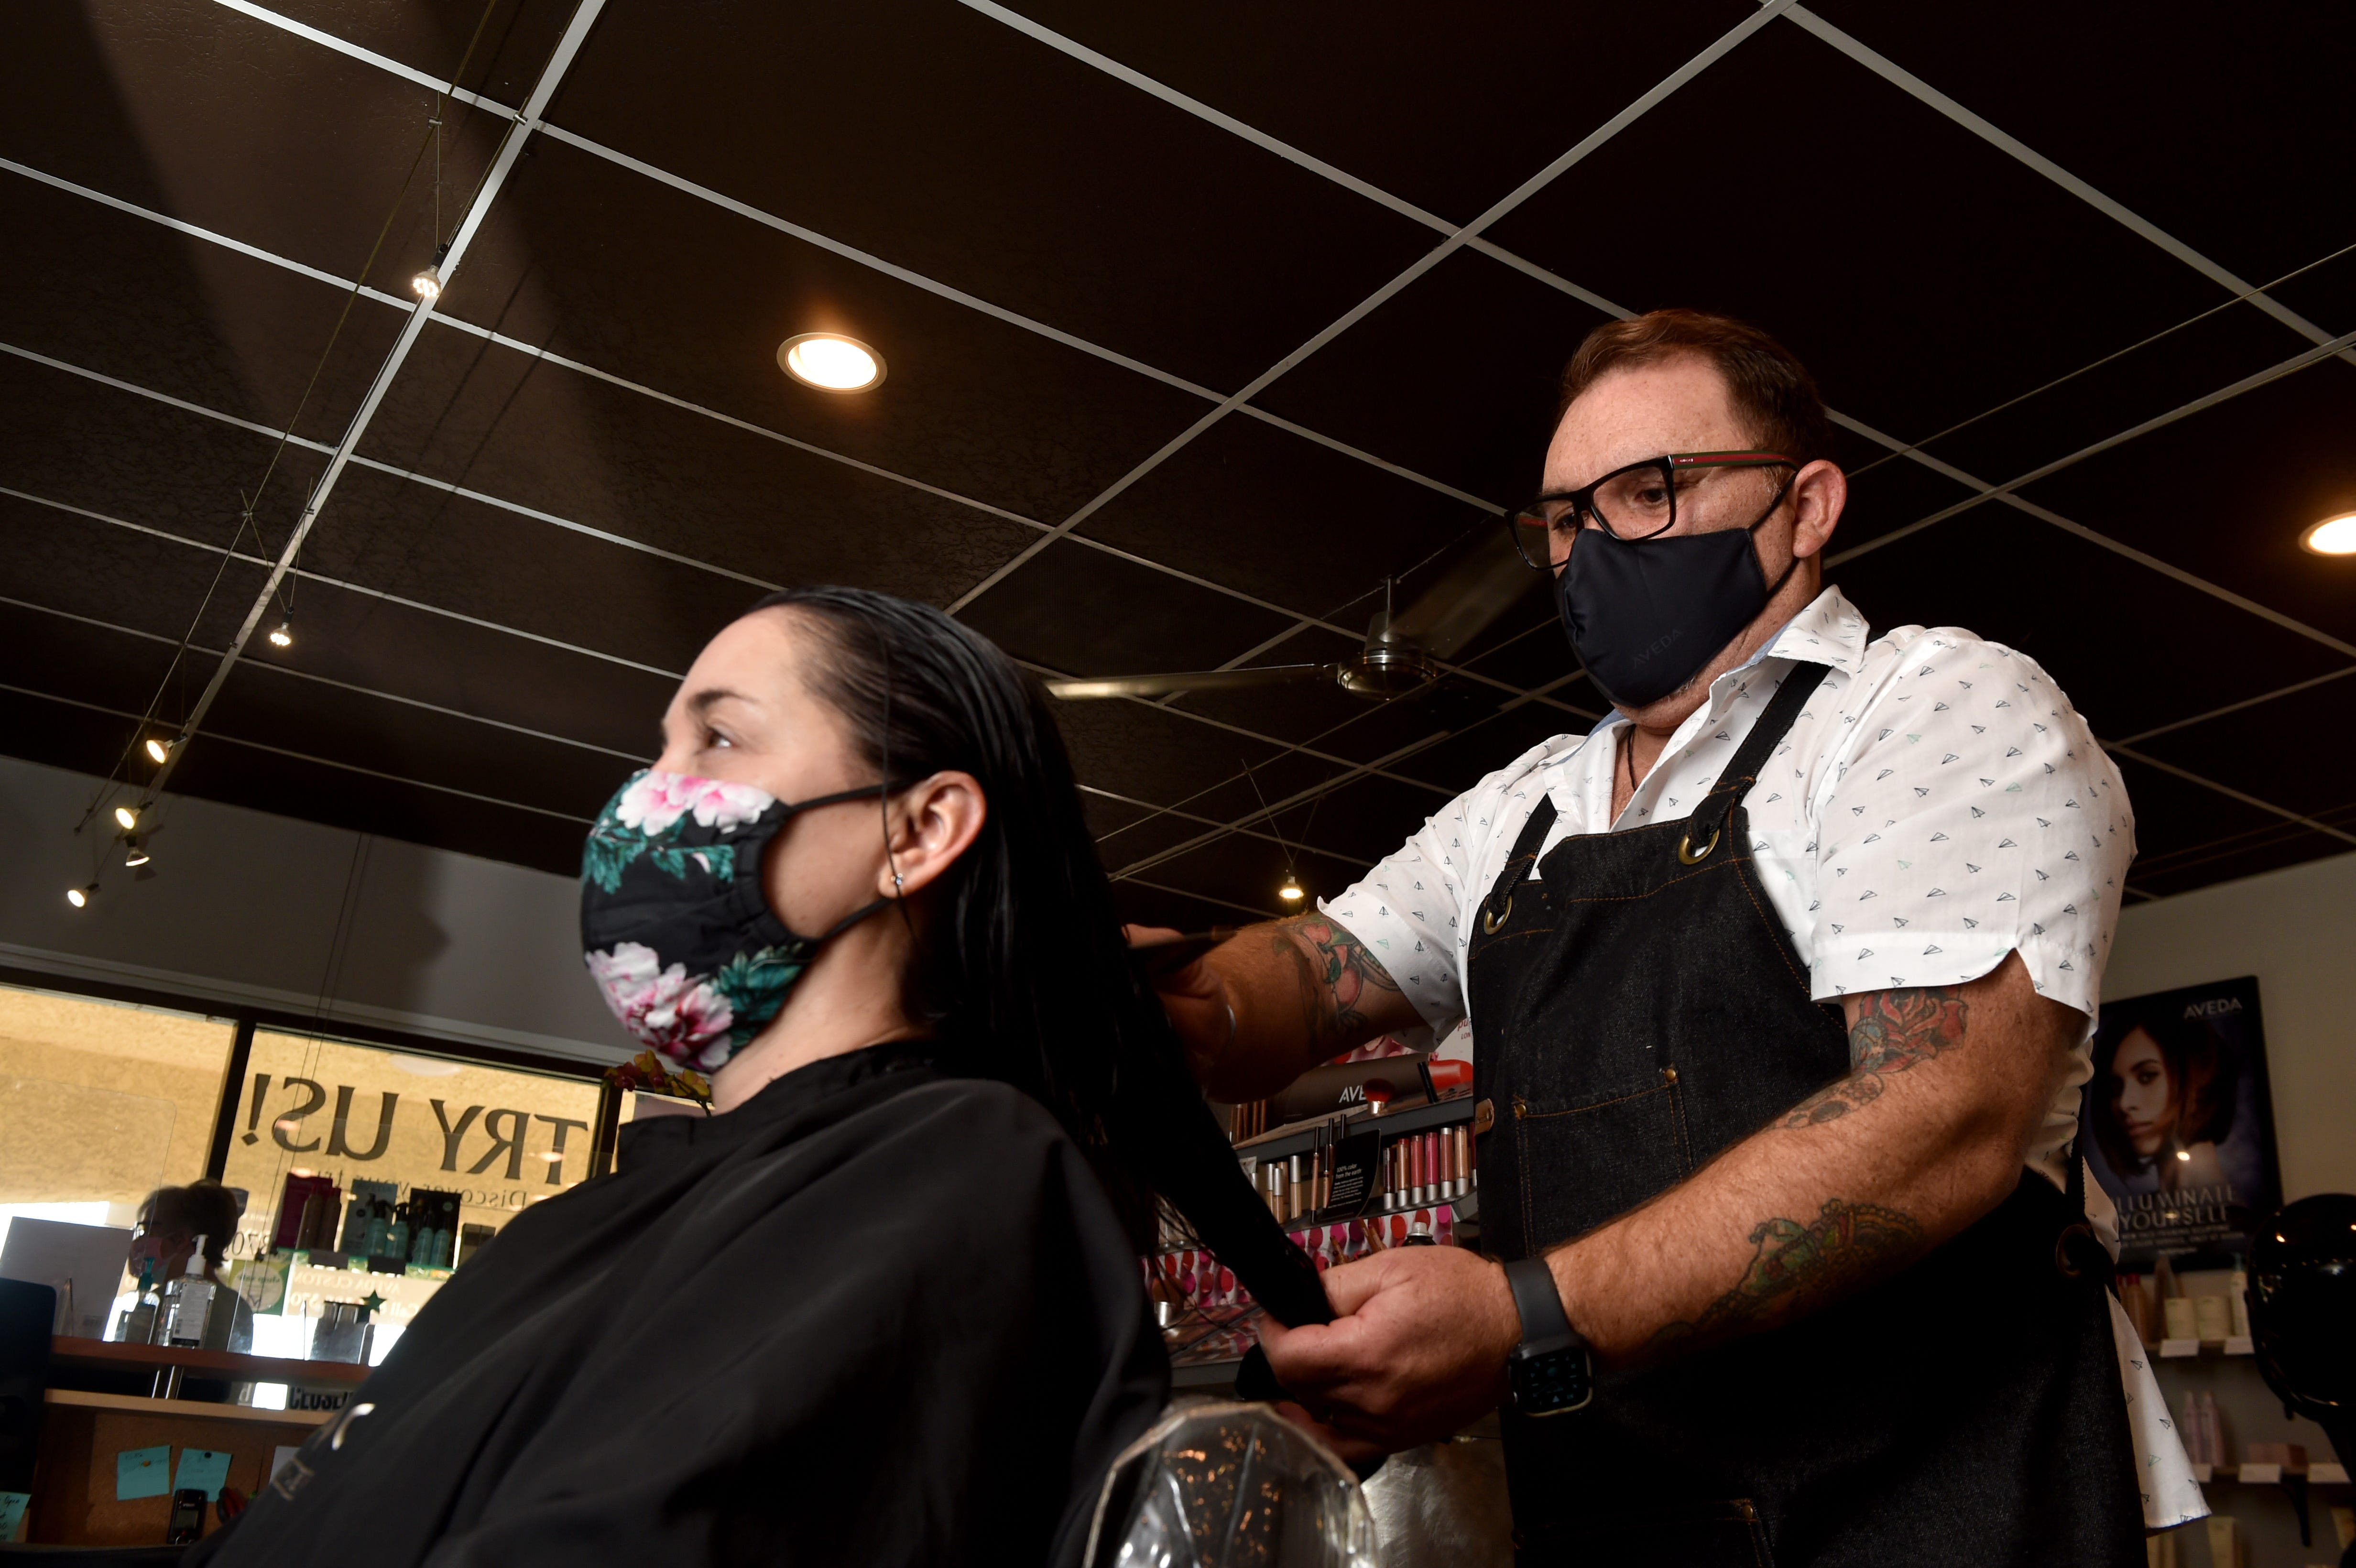 """Enrique Ramirez, owner of Salon Passion in Camarillo, styles the hair of Leslie Kaplan on Wednesday, Feb. 24, 2021, as Ramirez and his staff work to keep the business going through the pandemic. The salon owner described the last year as a """"roller coaster."""""""